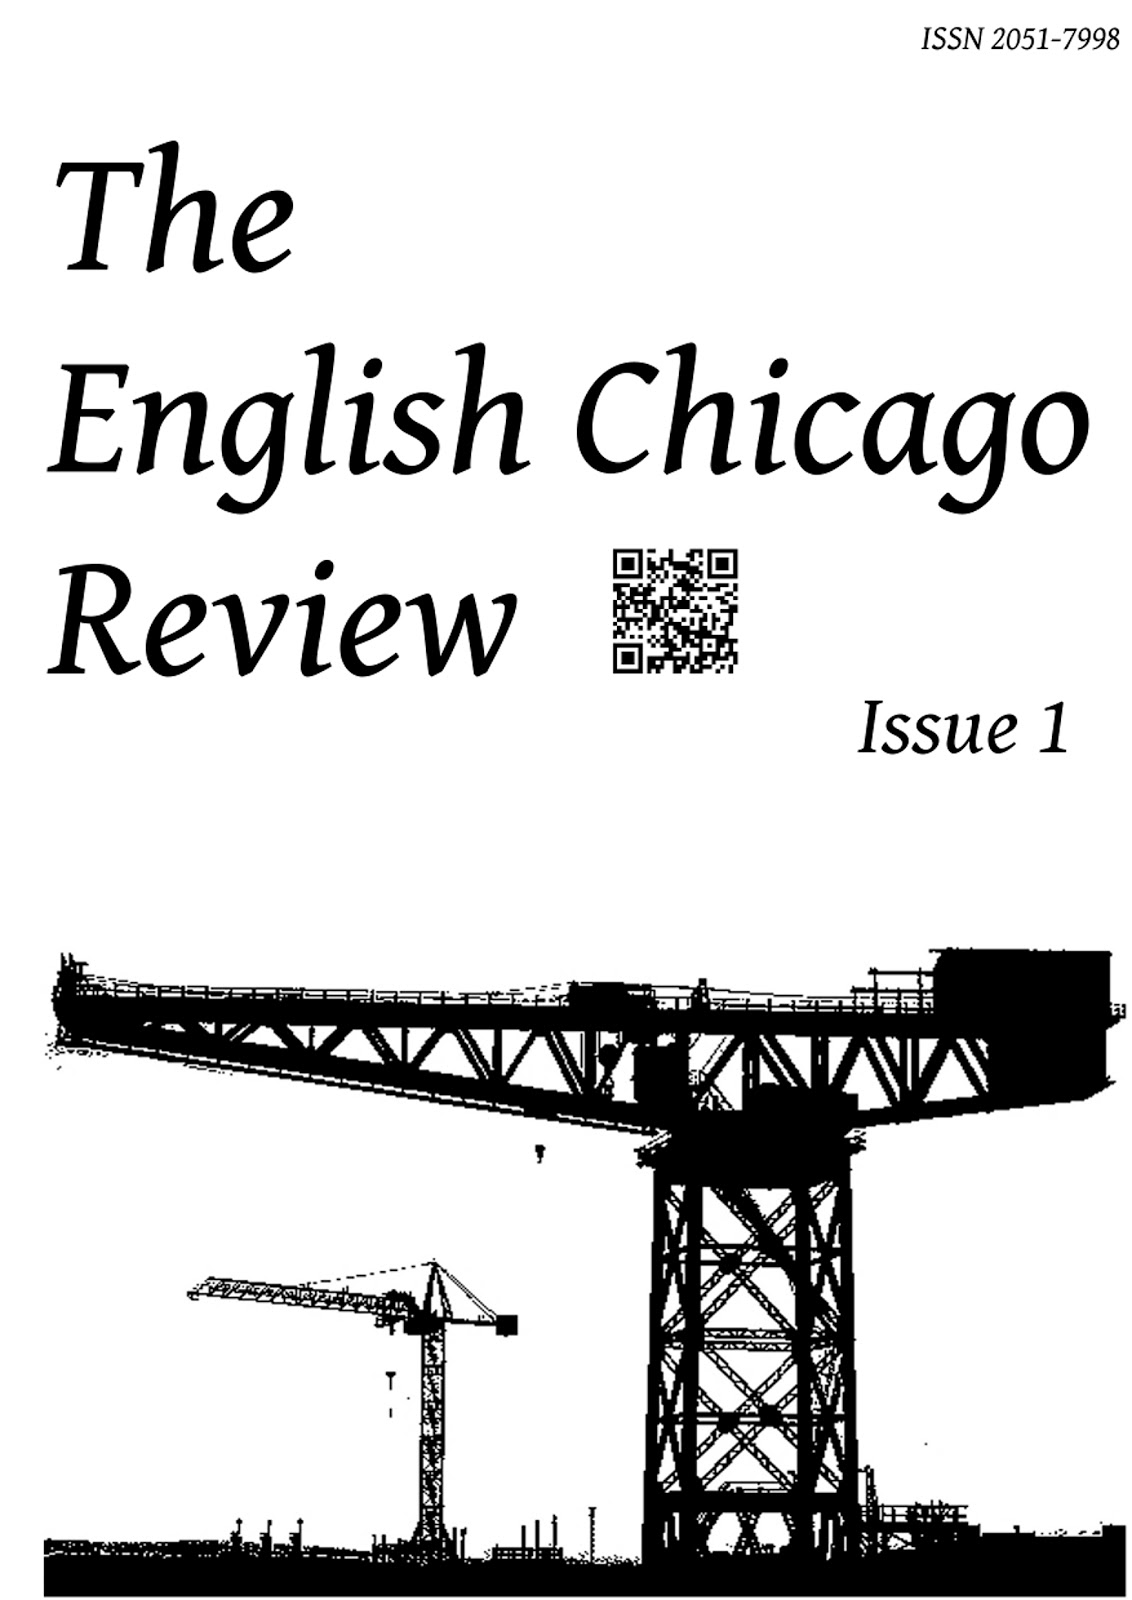 cover of The English Chicago Review, Issue 1